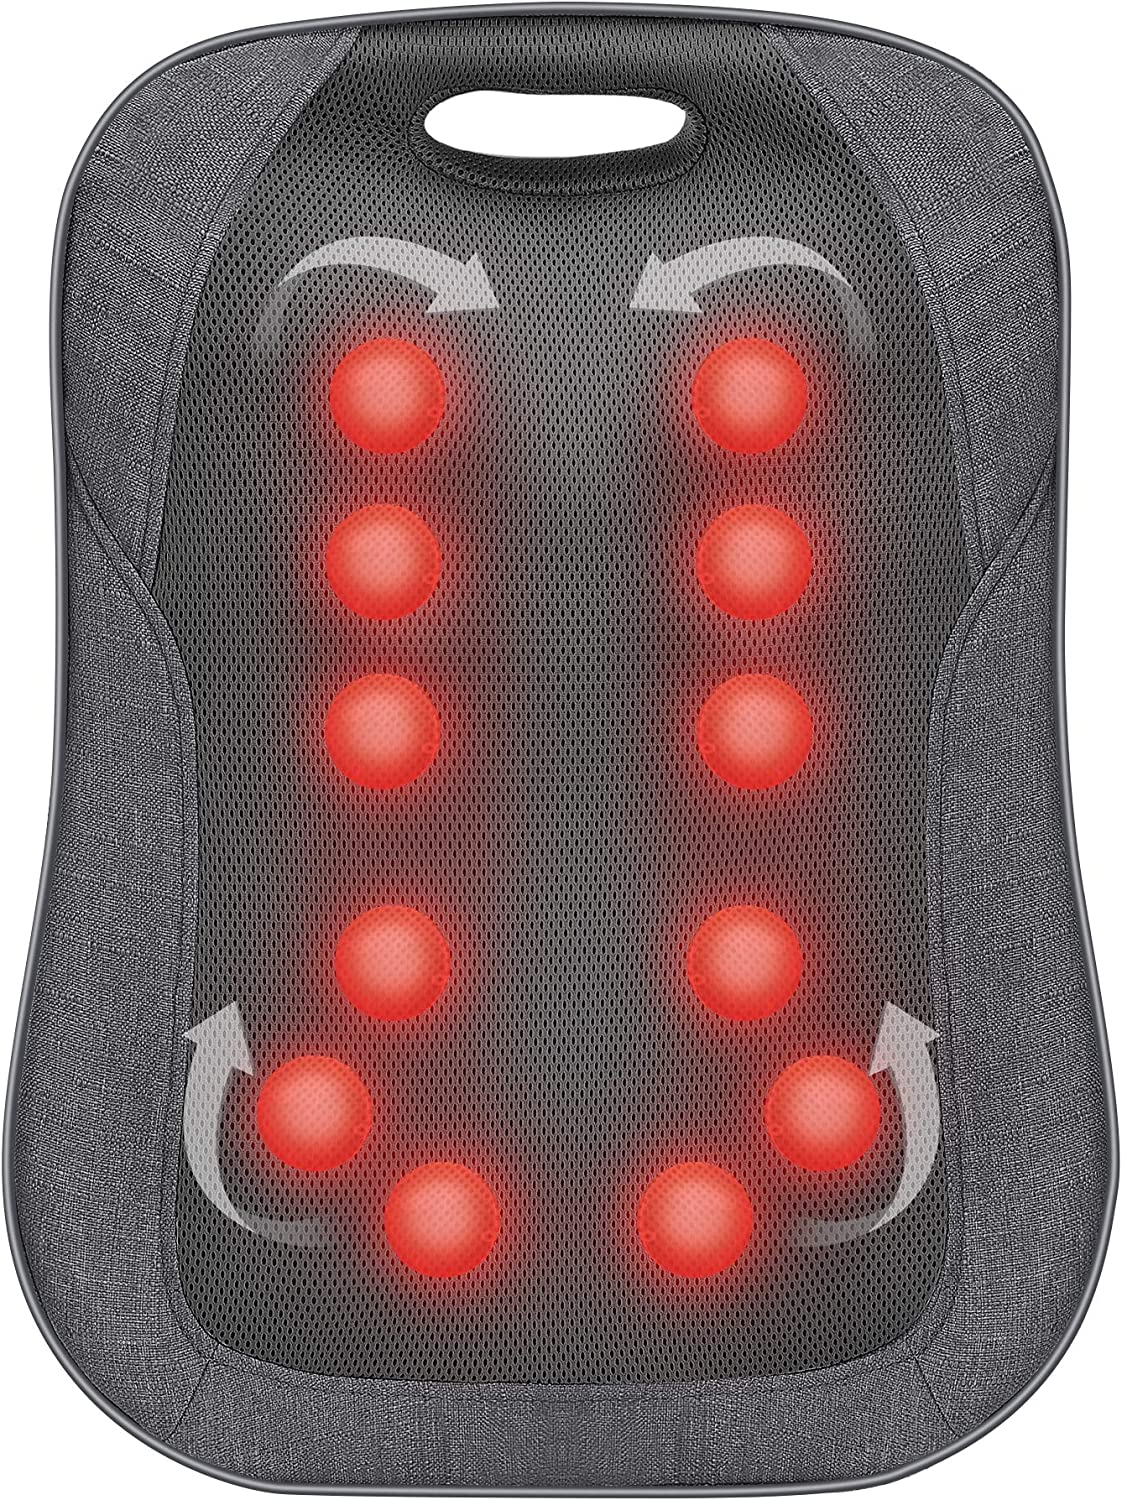 Shiatsu Back Massager with Heat- Portable Massage Cushion,Ideal Gifts for Women/Men, Adjustable Kneading Massage Chair Pad,Chair Massager for Office,Home Use